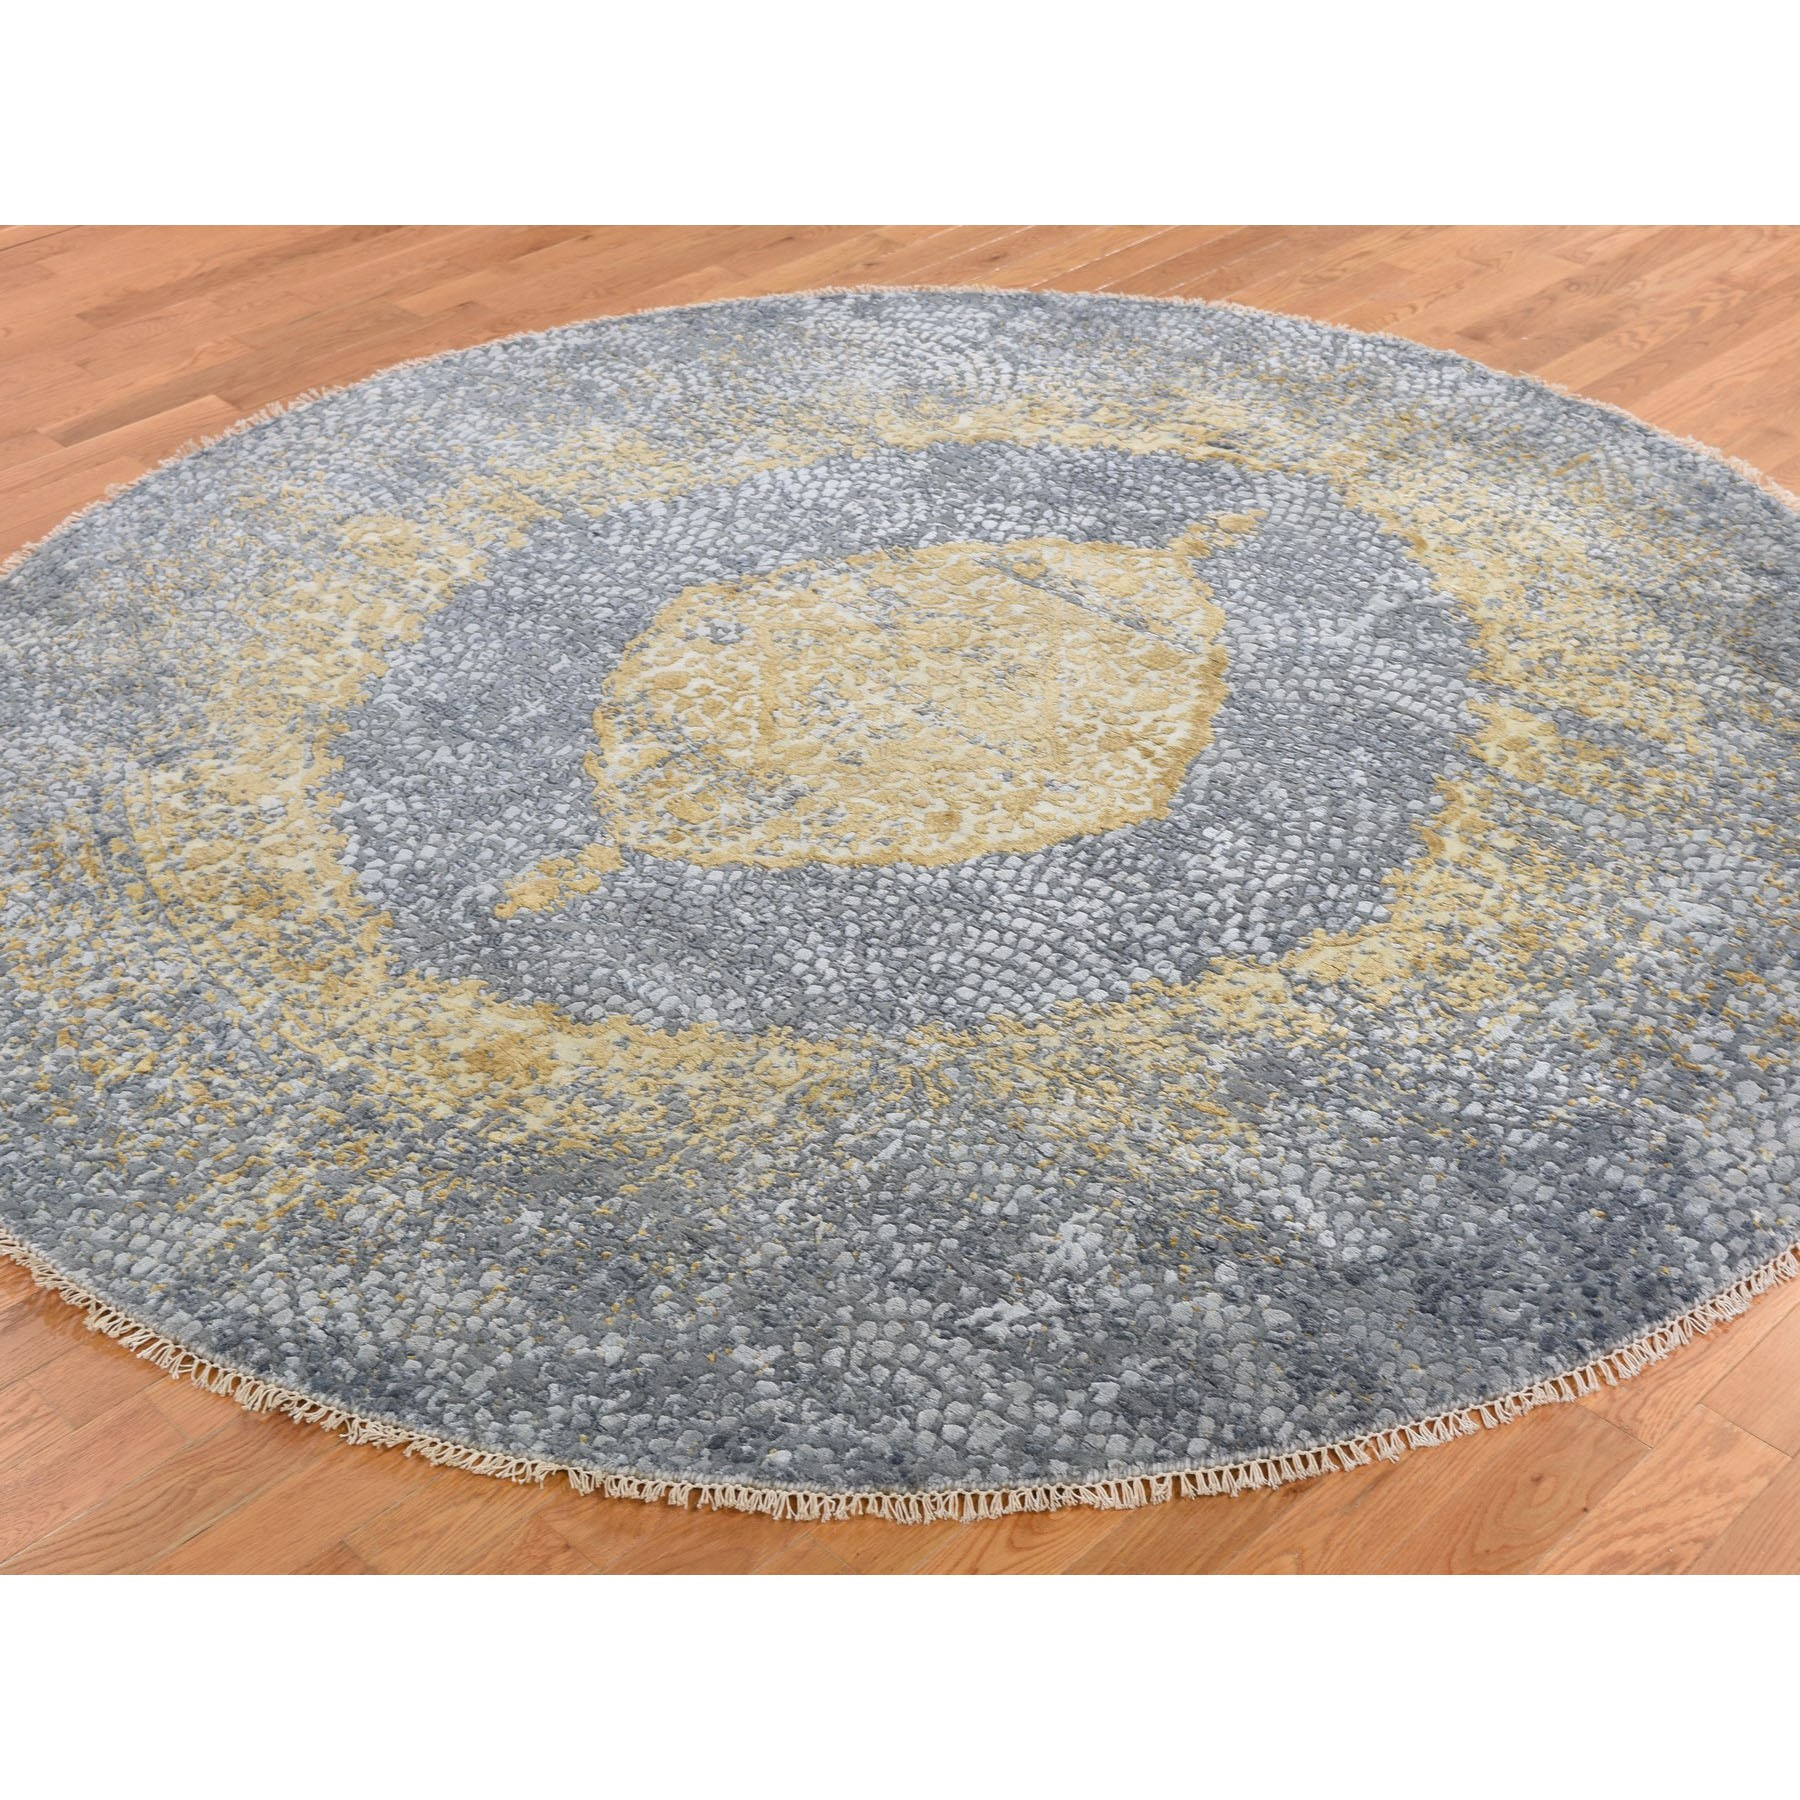 7-10 x7-10  Round Gray Gold Persian Design Wool And Pure Silk Hand Knotted Oriental Rug